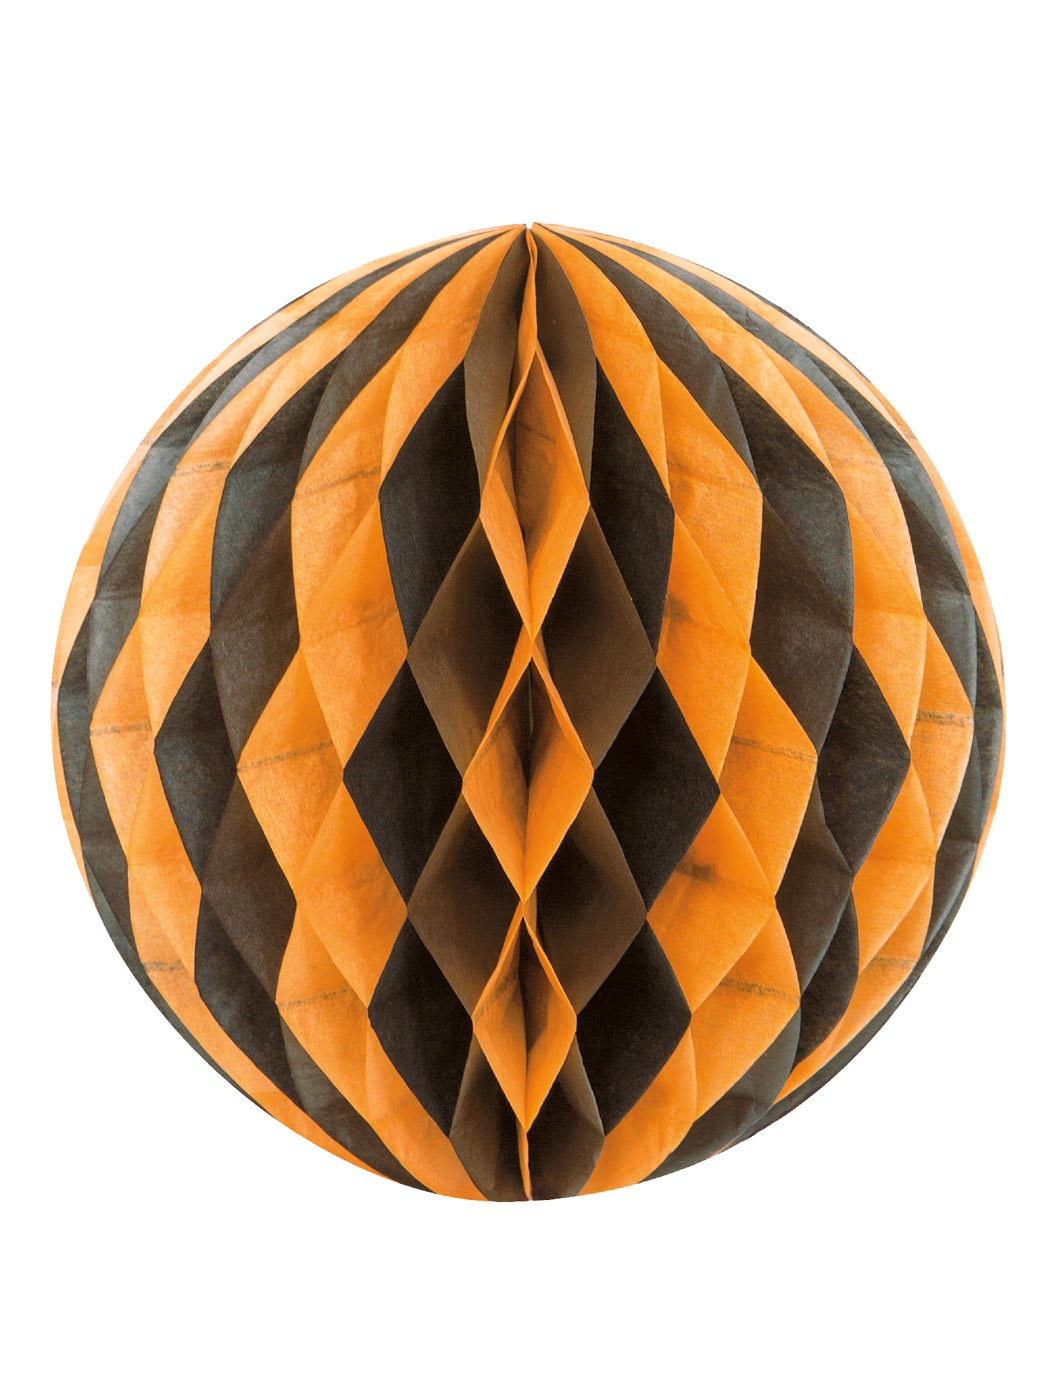 boule en papier noire et orange halloween d coration anniversaire et f tes th me sur vegaoo party. Black Bedroom Furniture Sets. Home Design Ideas